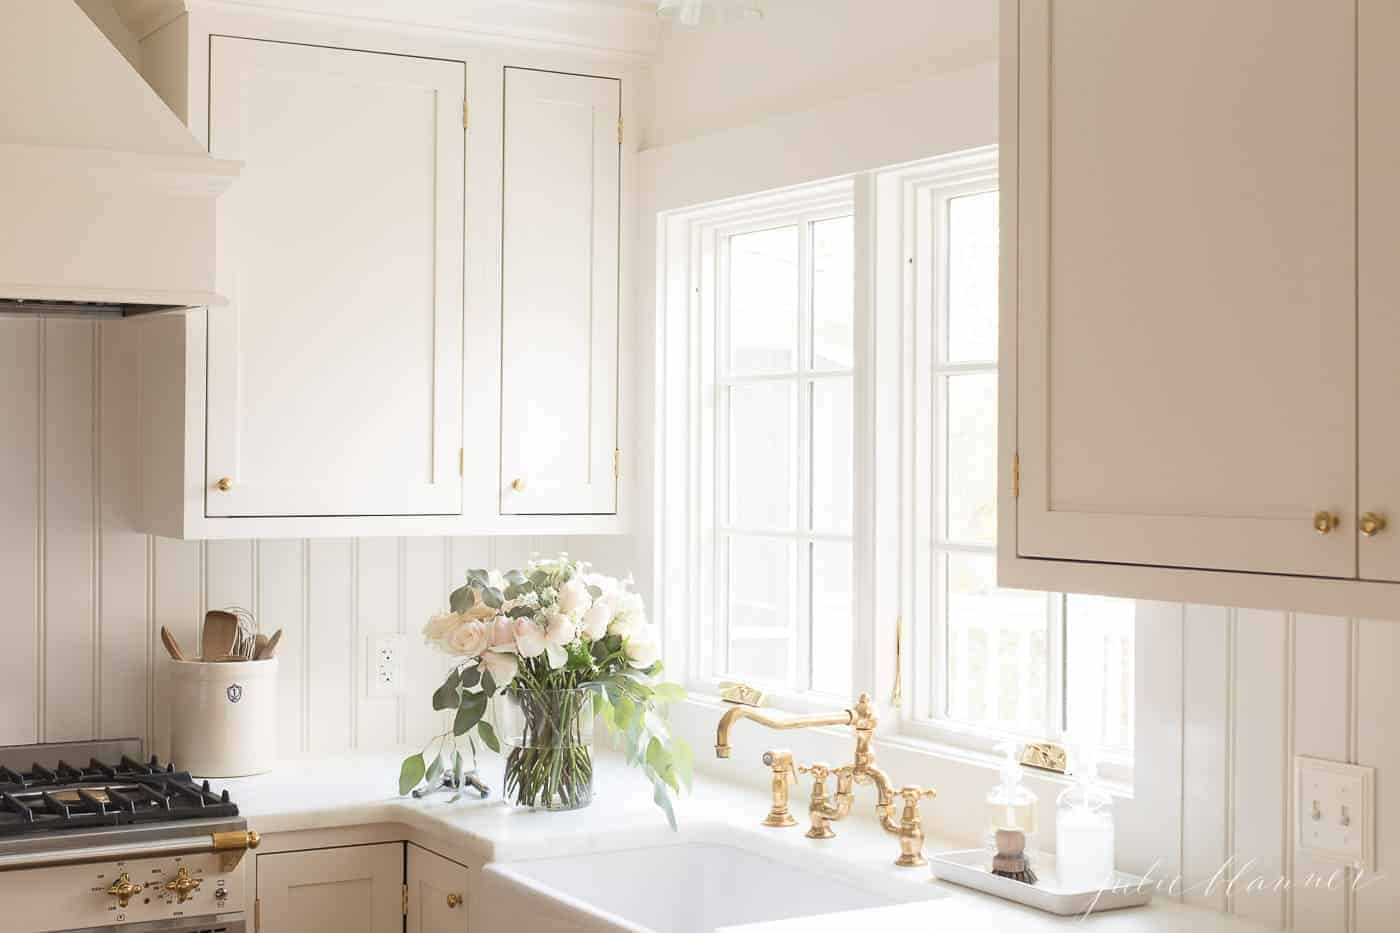 A white kitchen with brass accents.